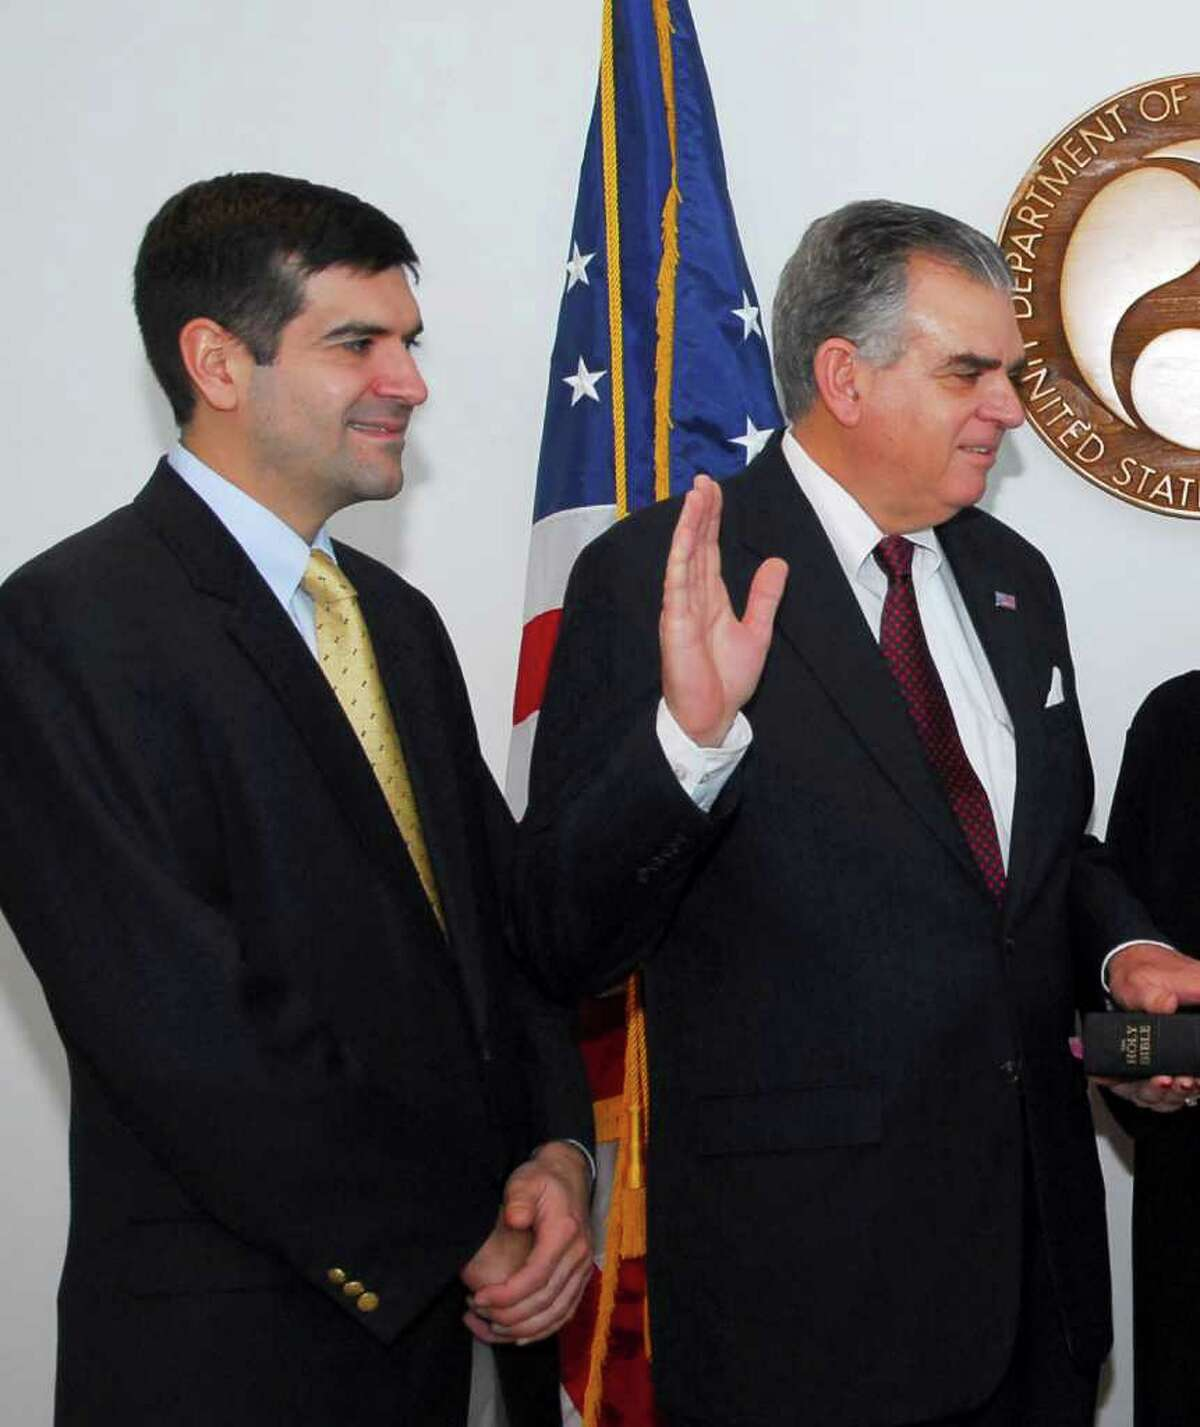 FILE - In this Jan. 23, 2009 handout file photo proved by the Transportation Department, Sam Lahood, left, watches as his father Ray is sworn in as Transportation Secretary, at the Transportation Department in Washington. Egypt released names of the 19 Americans employees of nonprofit organizations referred to trial over accusations of illegally receiving foreign funds in a case that deepened crisis between Egypt and the United States. The Americans listed in the prosecutor's records work for four U.S.-funded groups promoting democracy and human rights including Freedom House and the International Republican Institute whose director is Sam LaHood, the son of U.S. Transportation Secretary Ray LaHood.